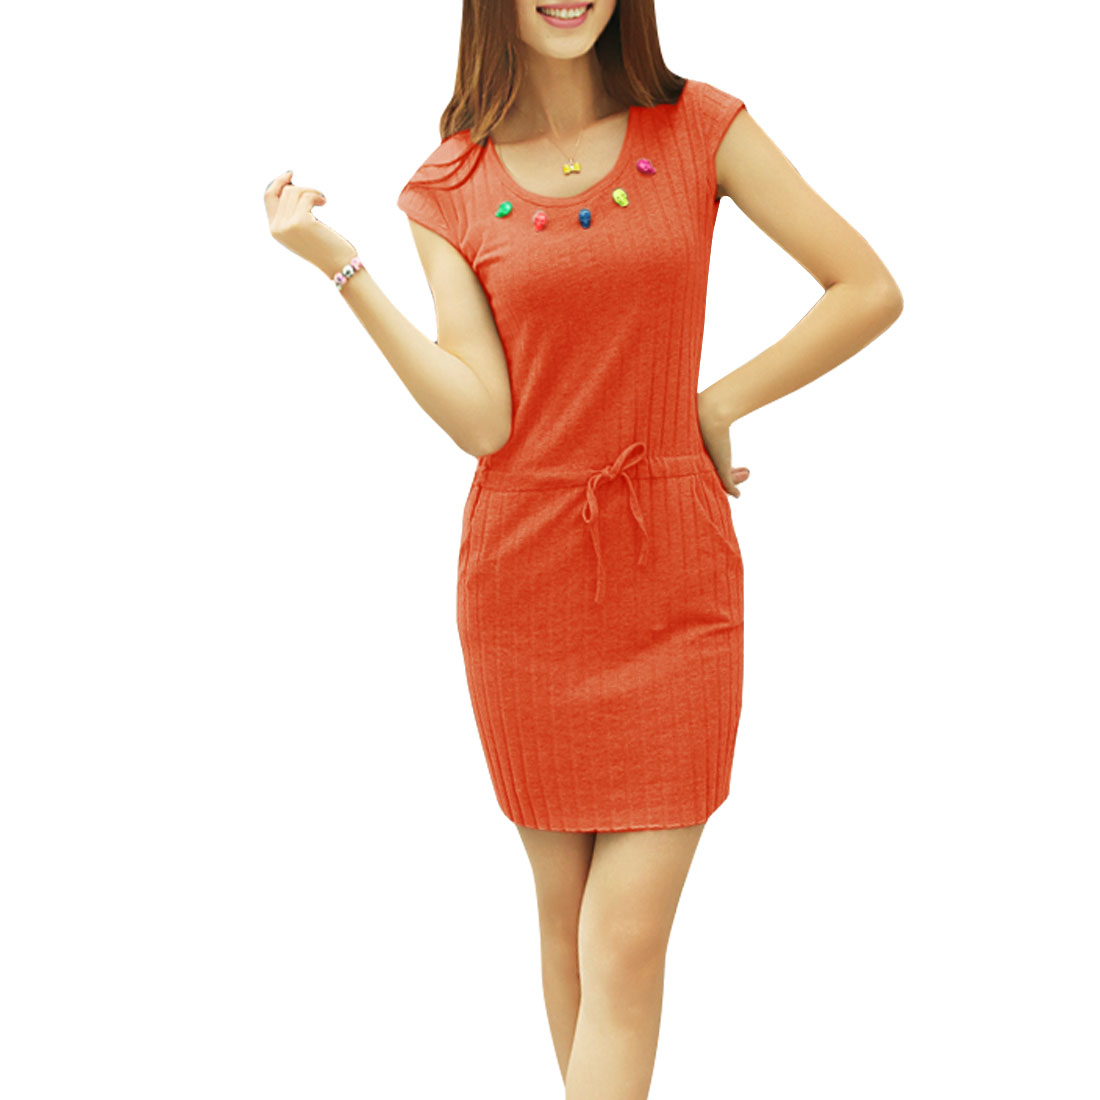 Ladies Stretchy Waist Skulls Decor Straight Chic Dress Orange-red XS